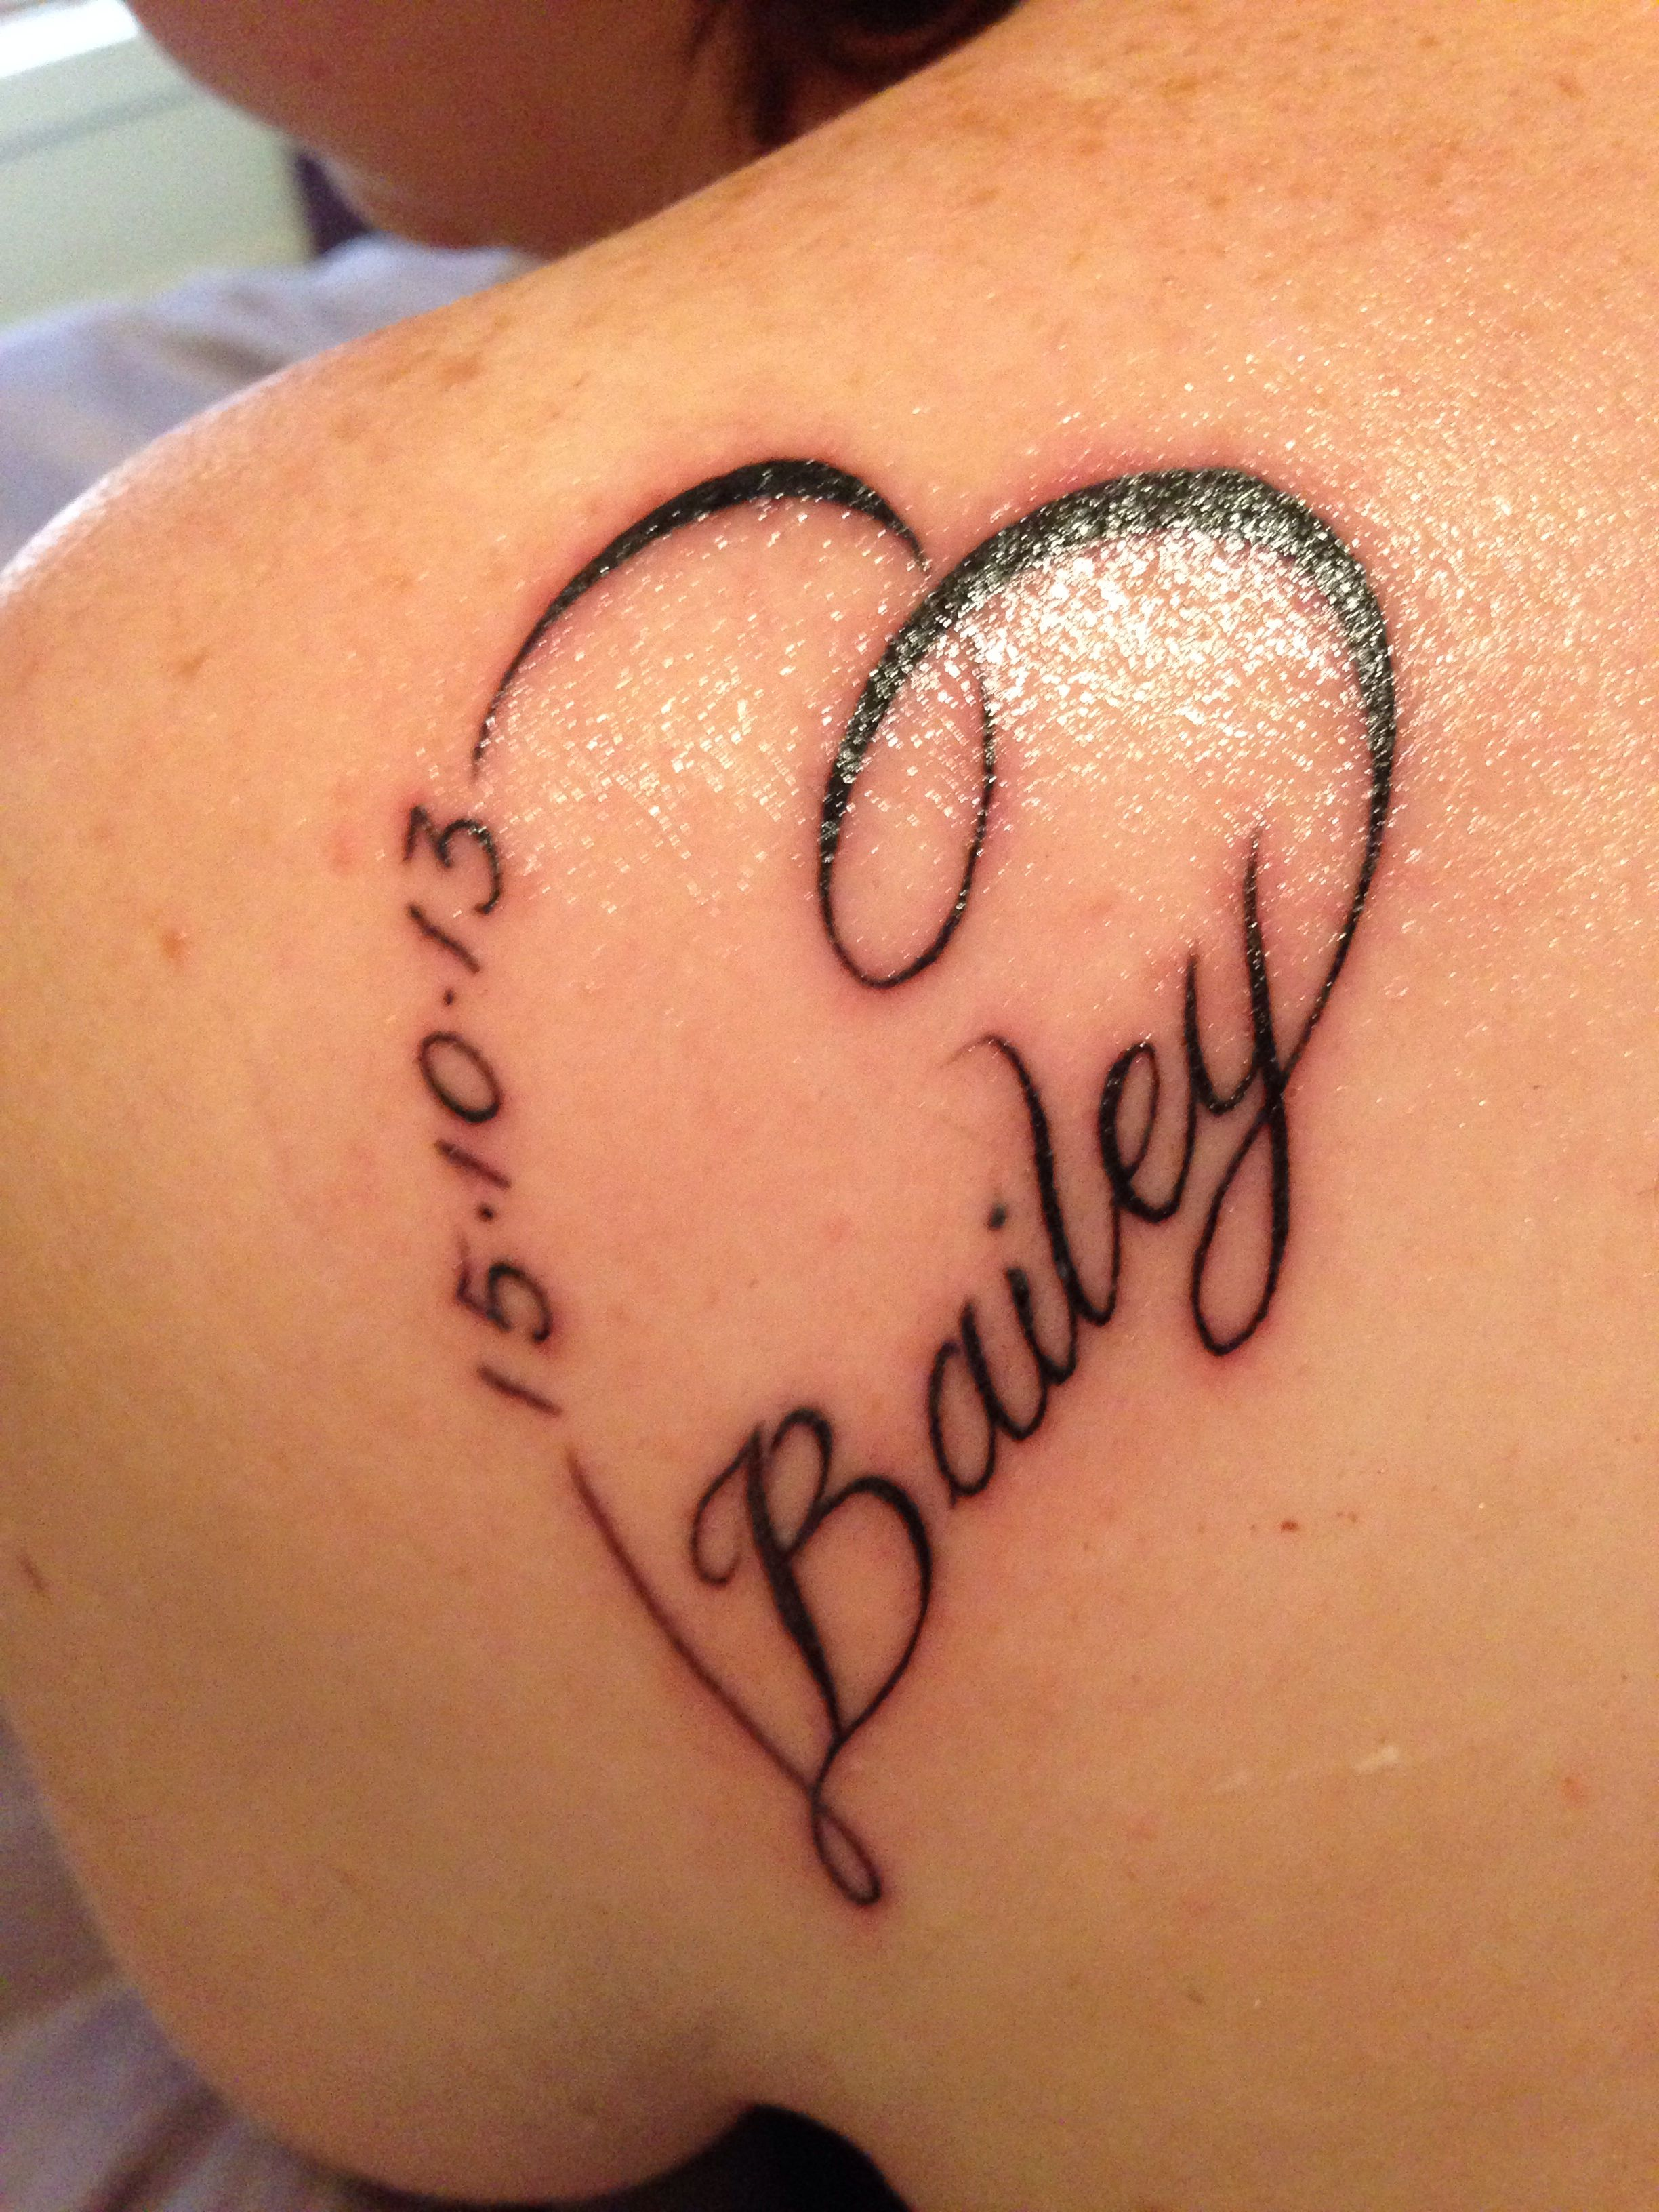 Pin By Melissa Gemelli On Tattoos Heart Tattoos With Names Tattoo For My Son Name Tattoos